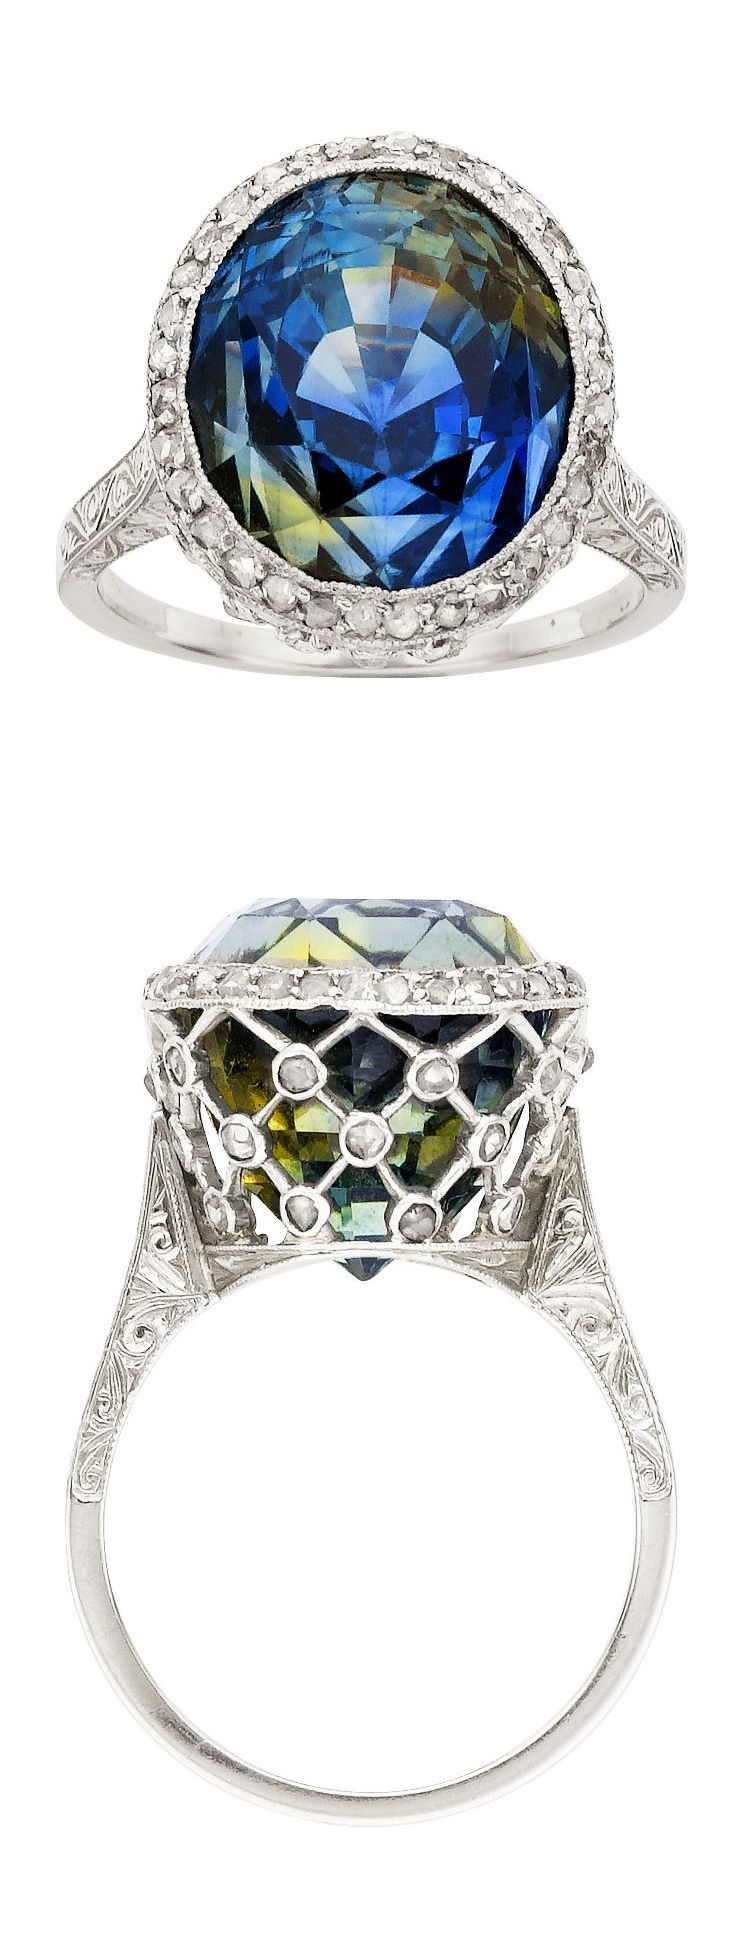 Edwardian Chameleon Sapphire, Diamond, Platinum, Gold Ring  The ring features an oval-shaped chameleon sapphire measuring 13.33 x 11.71 x 12.57 mm and weighing approximately 15.70 carats, accented by rose-cut diamonds weighing a total of approximately 0.60 carat, set in platinum, completed by an engraved 18k white gold shank